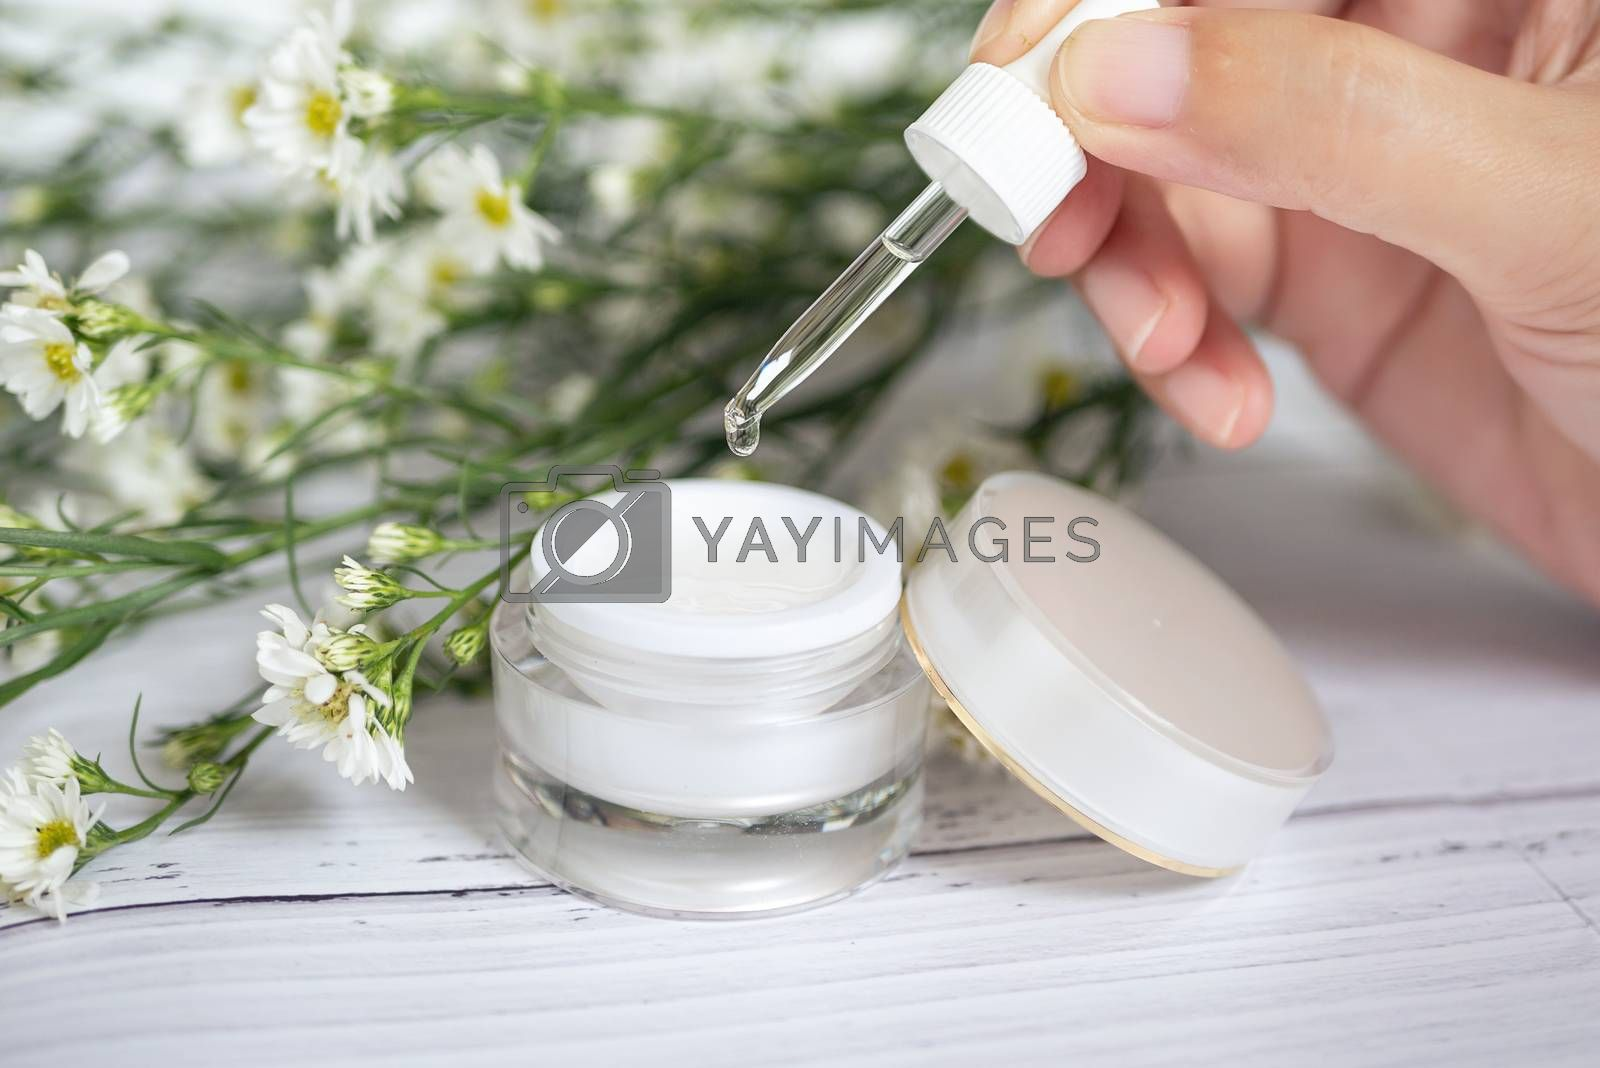 organic natural skincare concept. open blank cosmetic cream jar with white cream texture inside and women hand holding glass dropper for dermatologist testing decorate with white flower at background